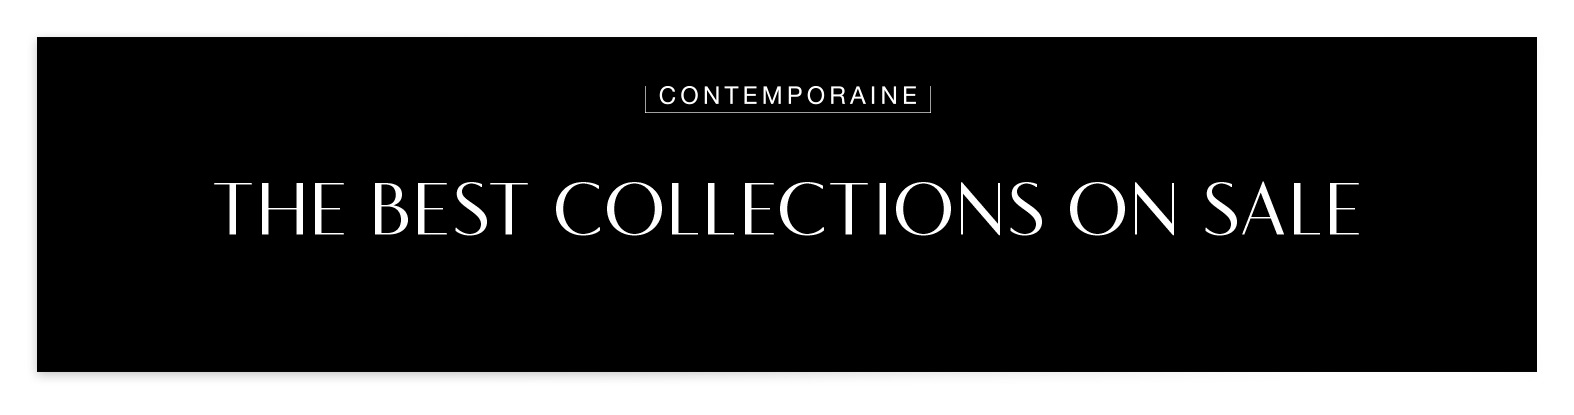 A17-BGM-CONTEMPORAINE_Collections en solde.psd